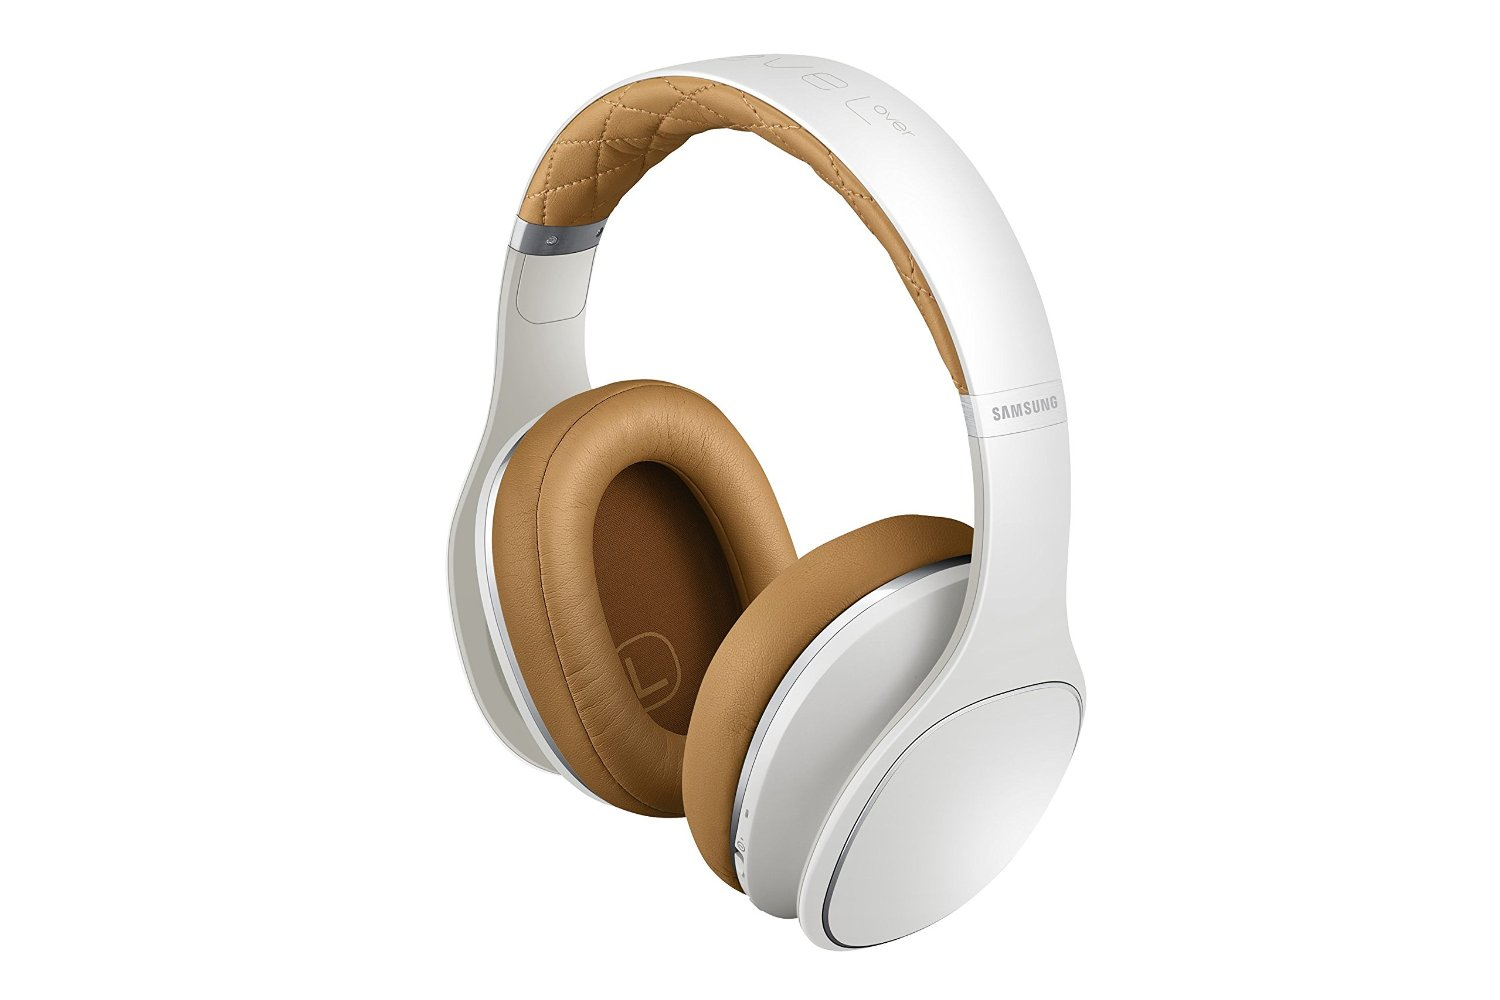 creative Headphone design and concept 6